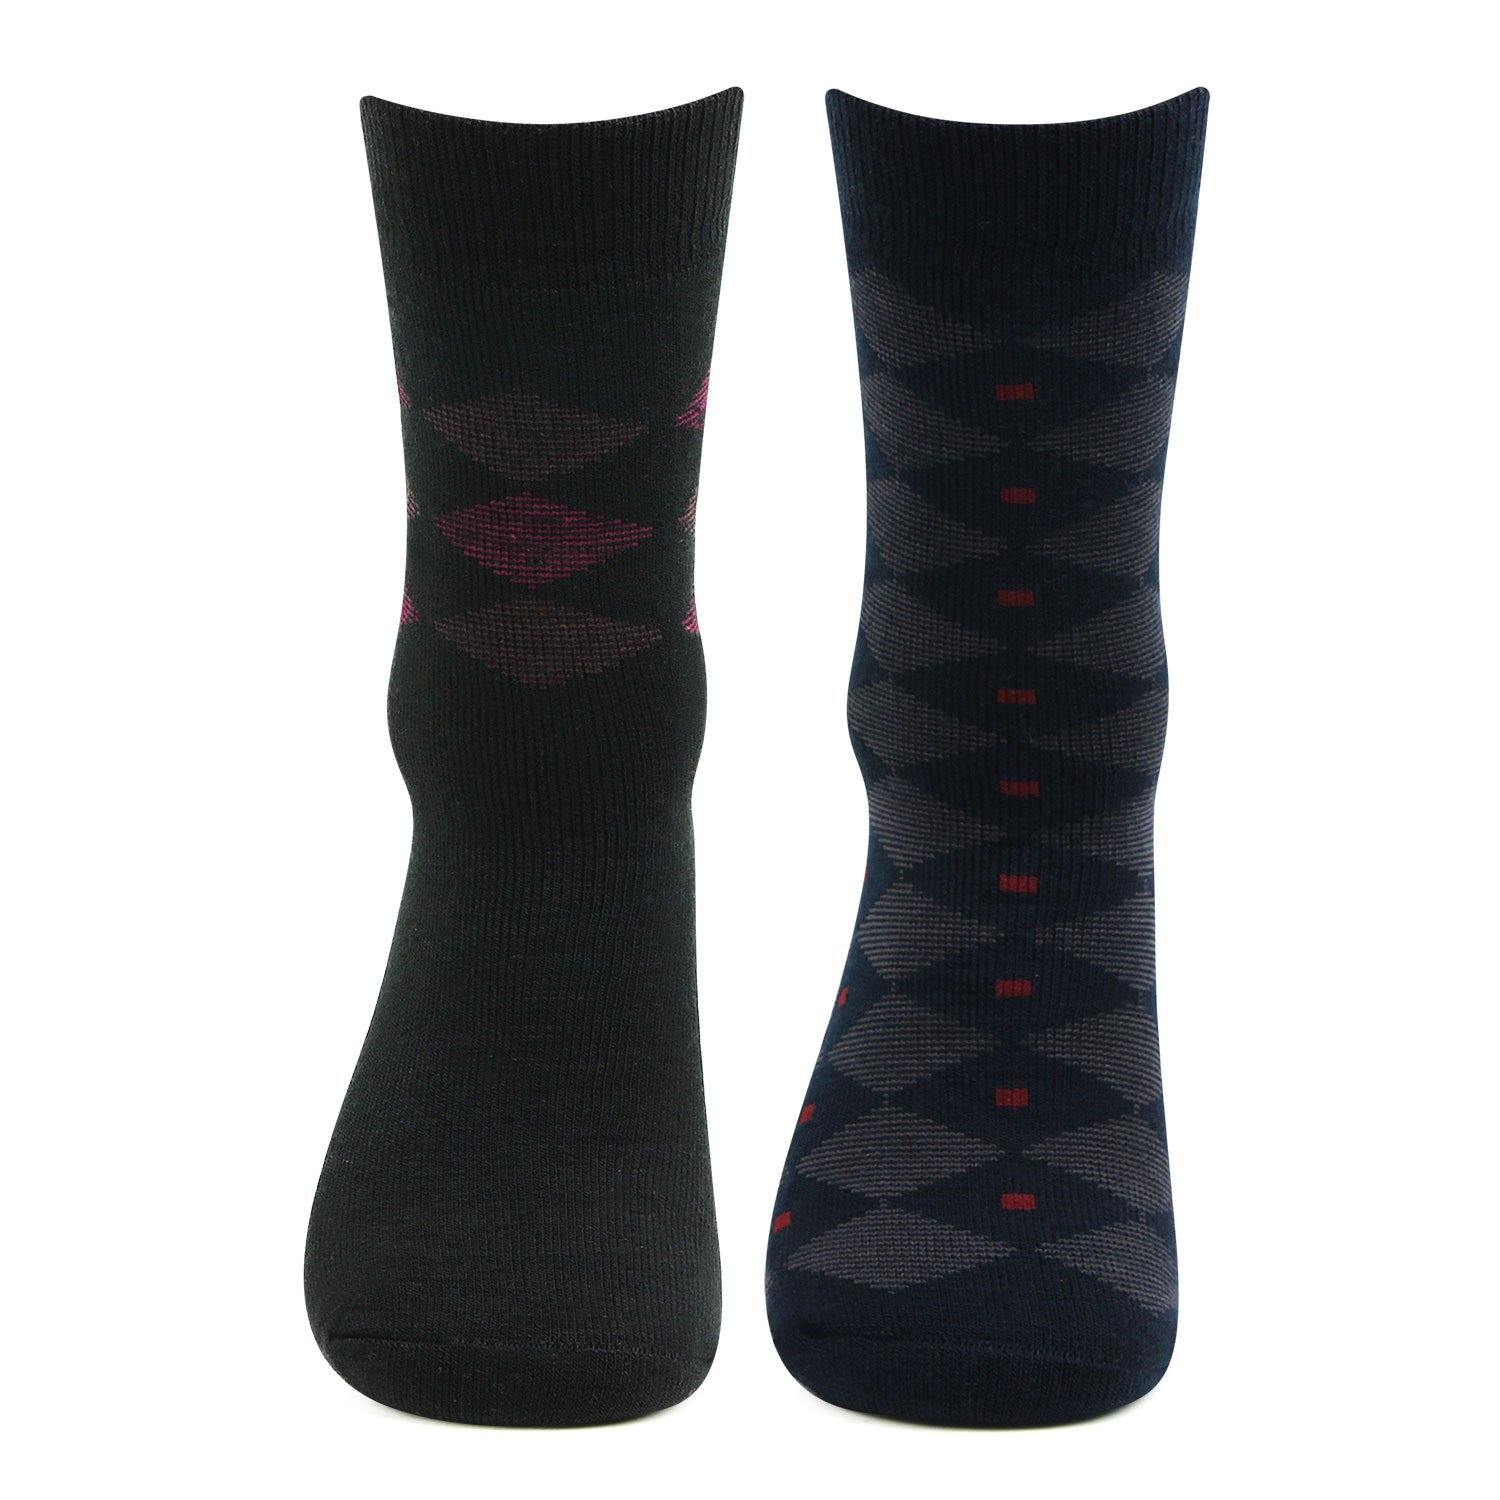 Premium Cushioned Crew Length Woolen Socks For Men - Pack Of 2